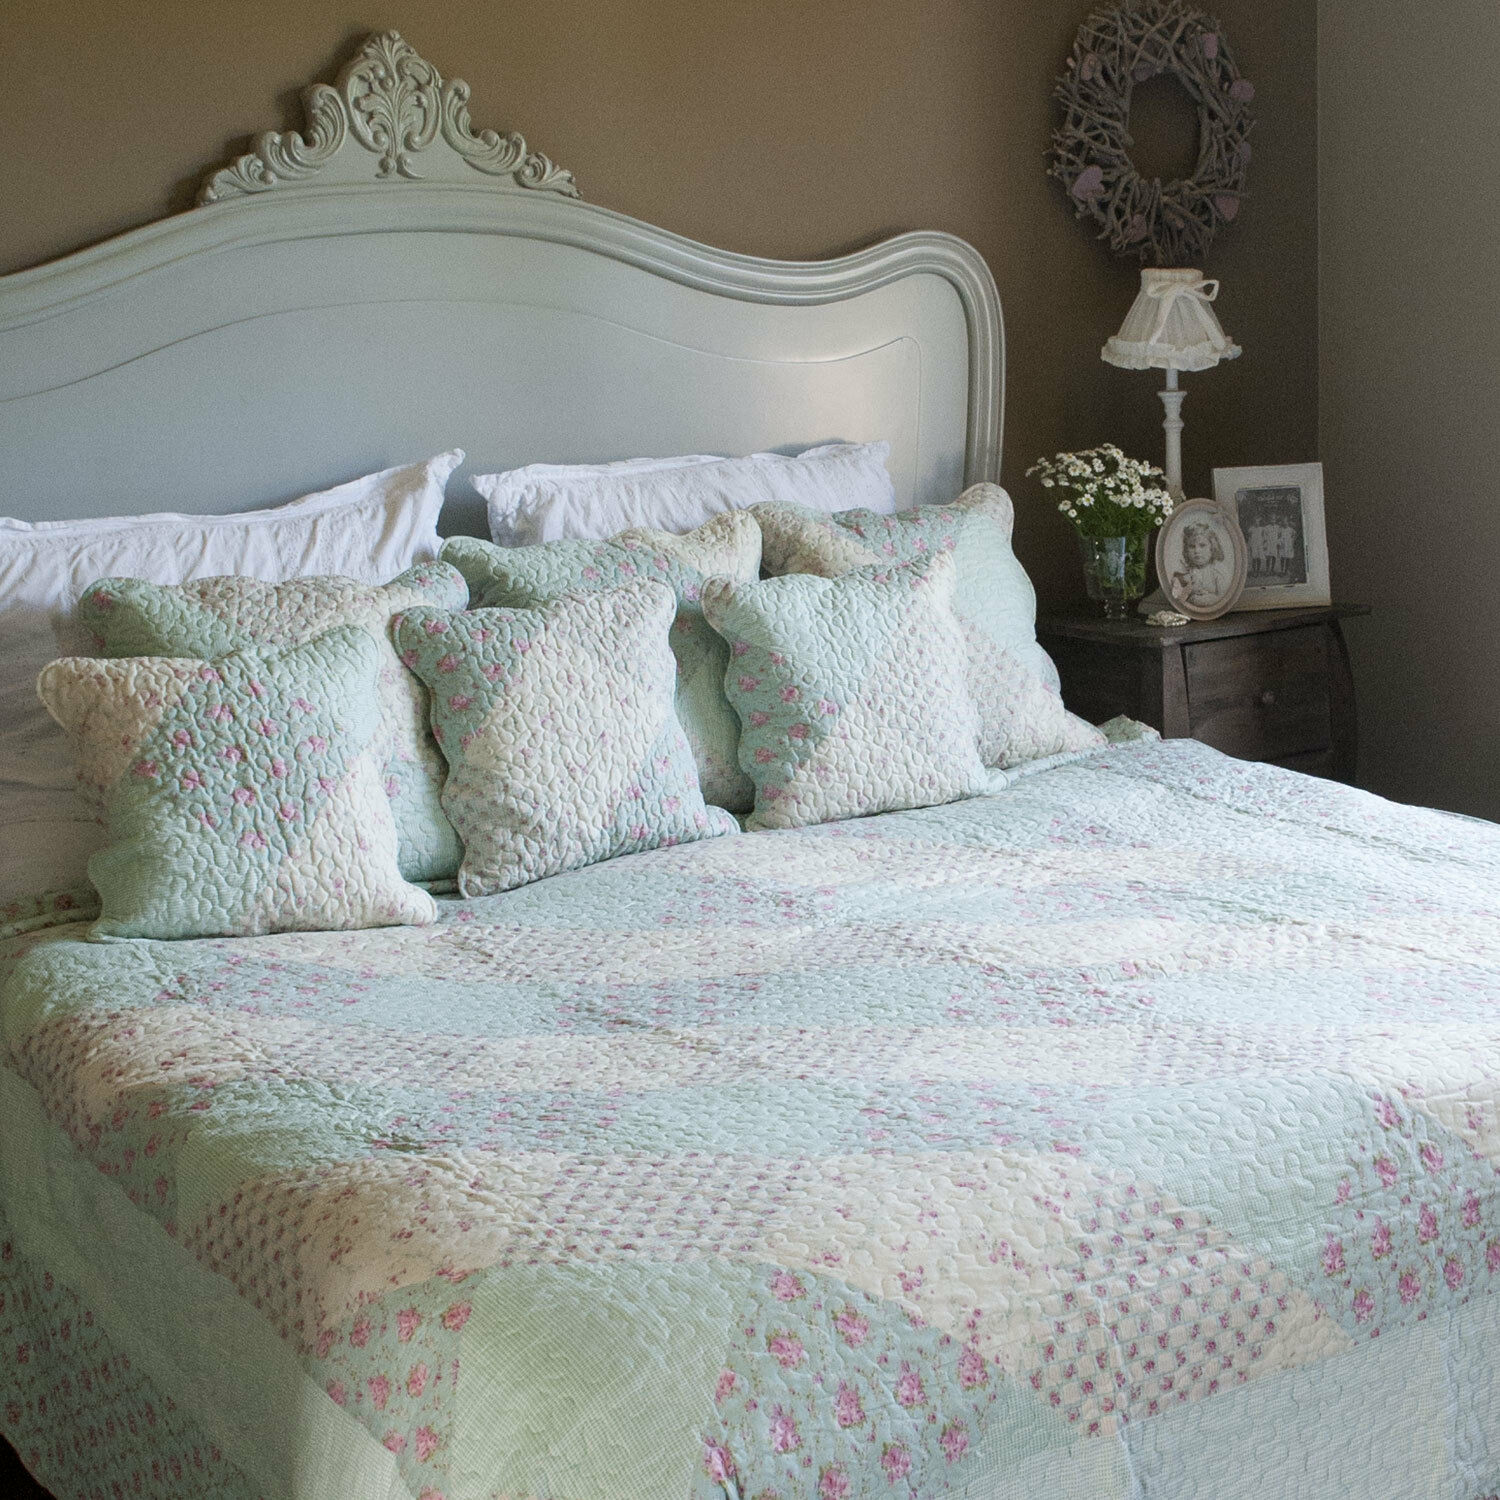 Clayre & Eef Bedspread Quilt Plaid Shabby Rustic pinkS PATCHWORK